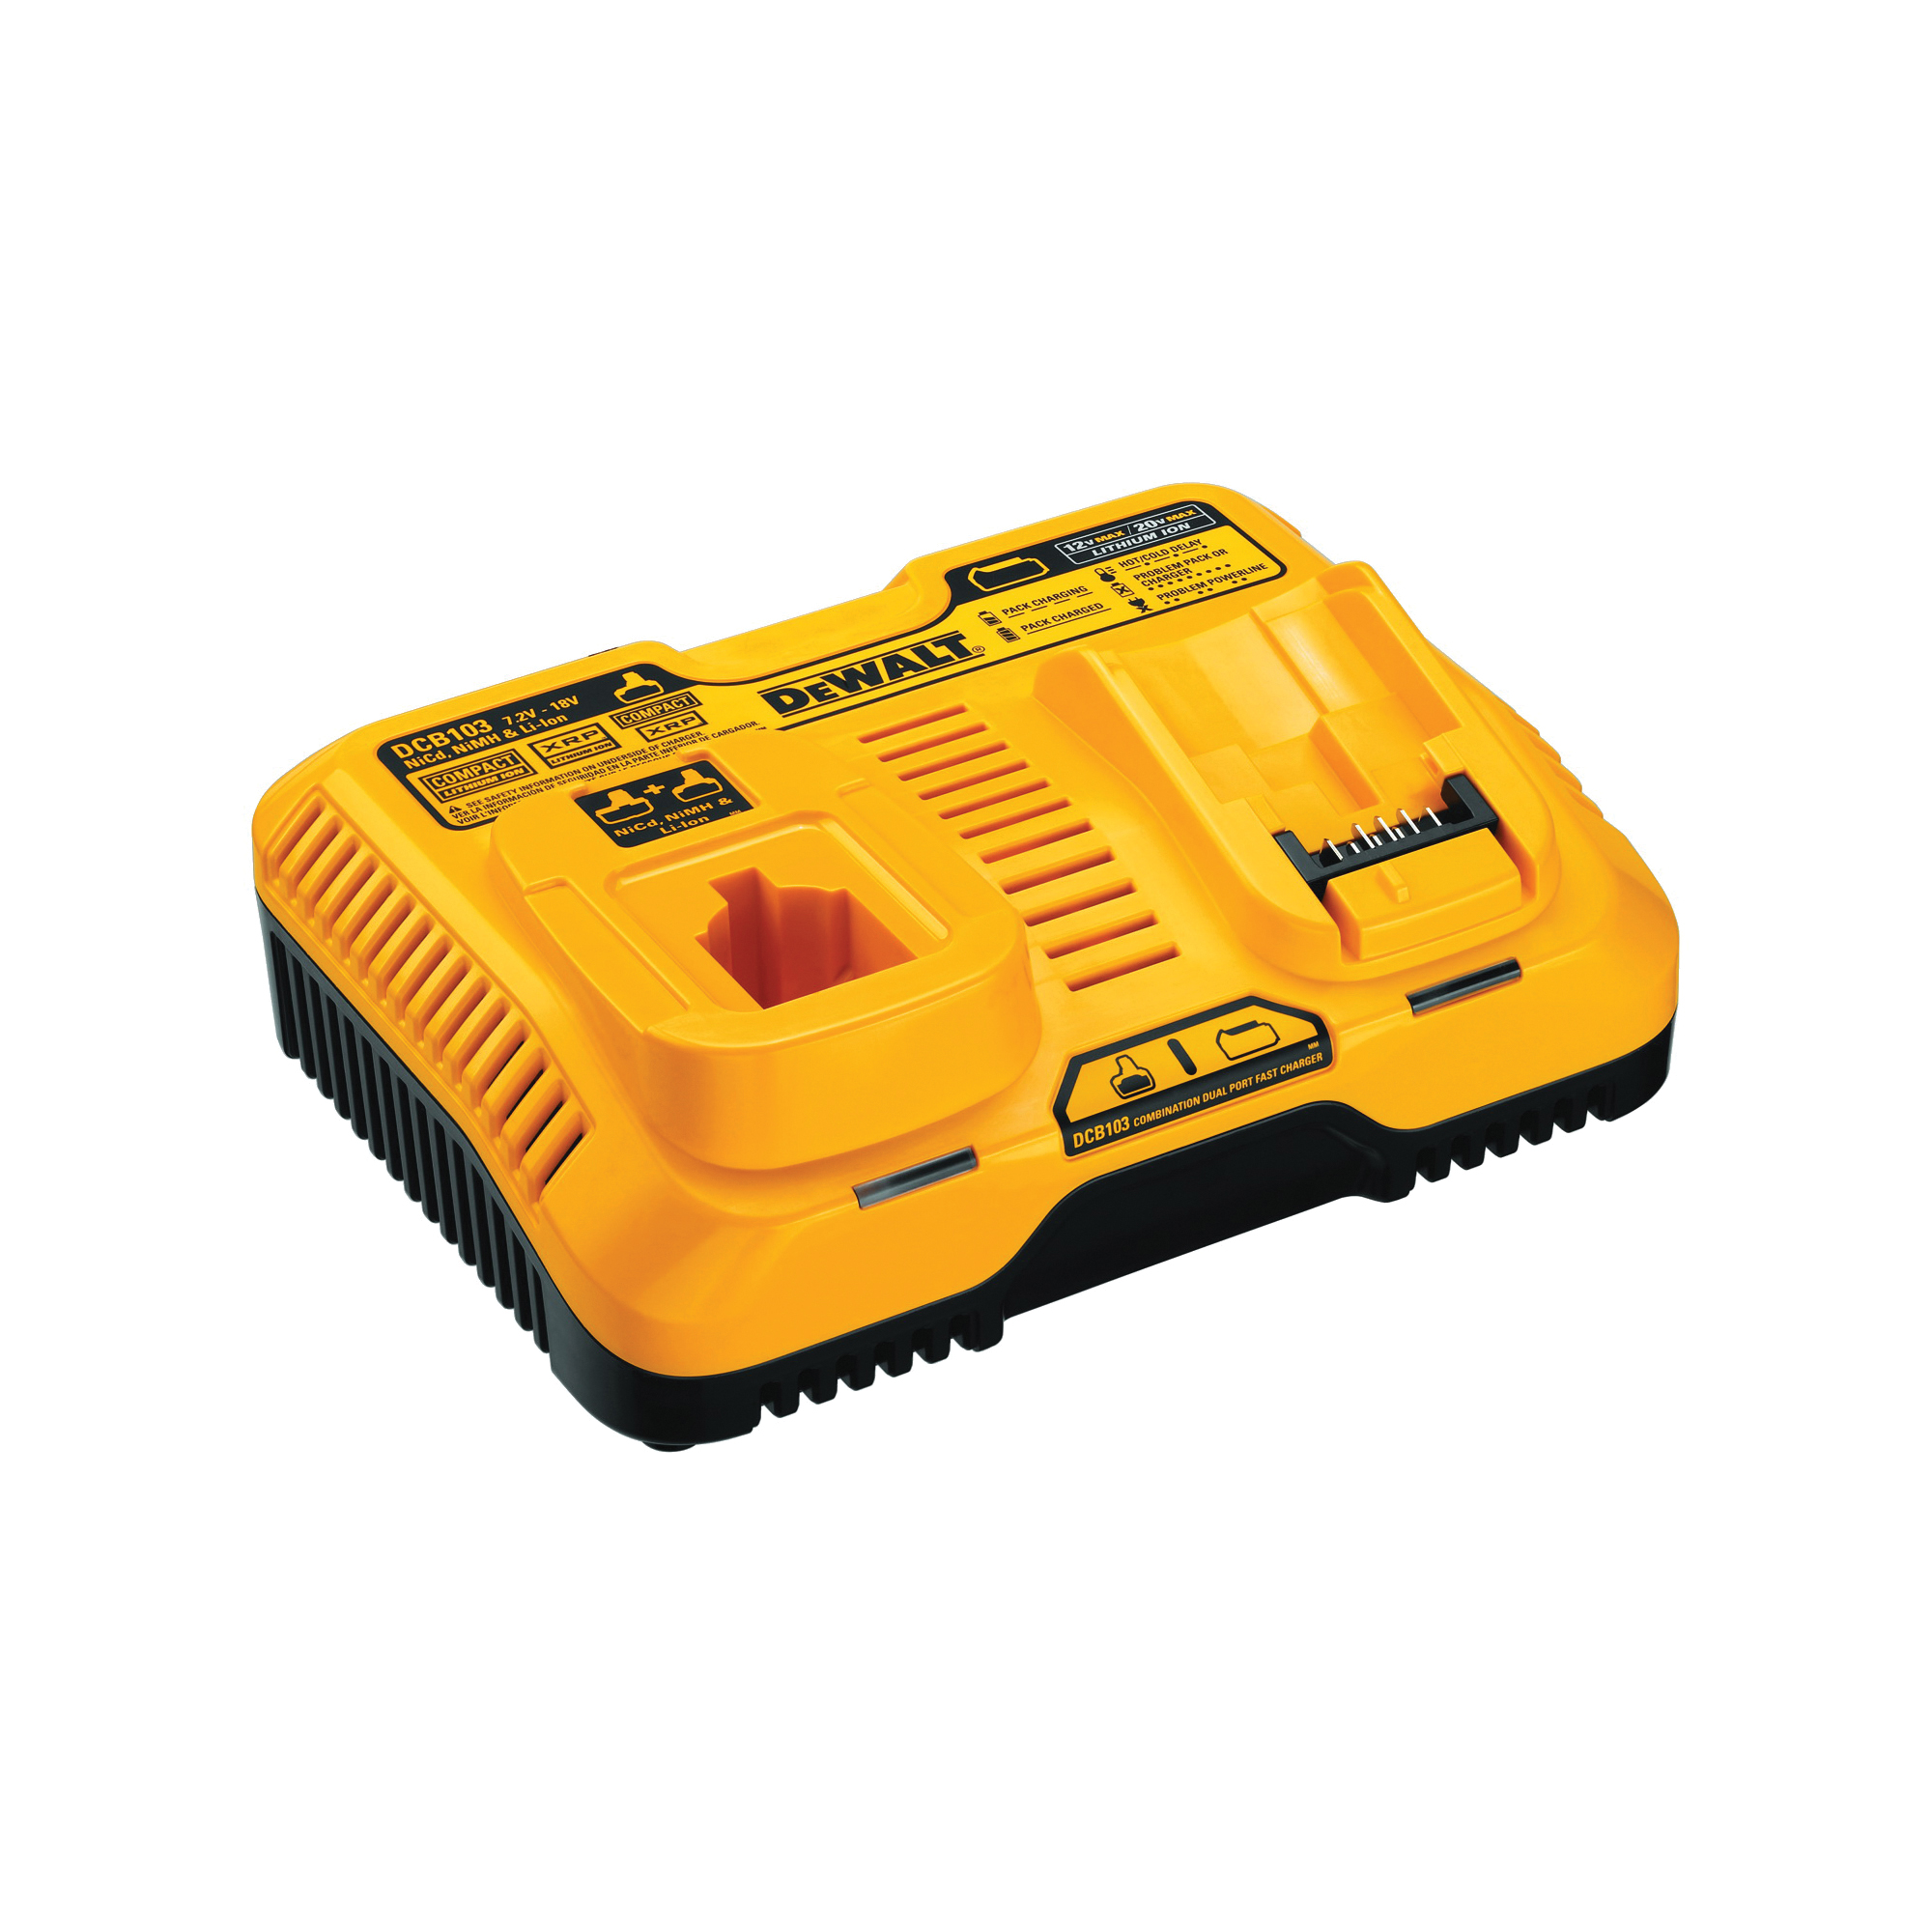 Picture of DeWALT DCB103 Battery Charger, 120 V Output, 90 min Charge, 2 -Battery, Battery Included: No